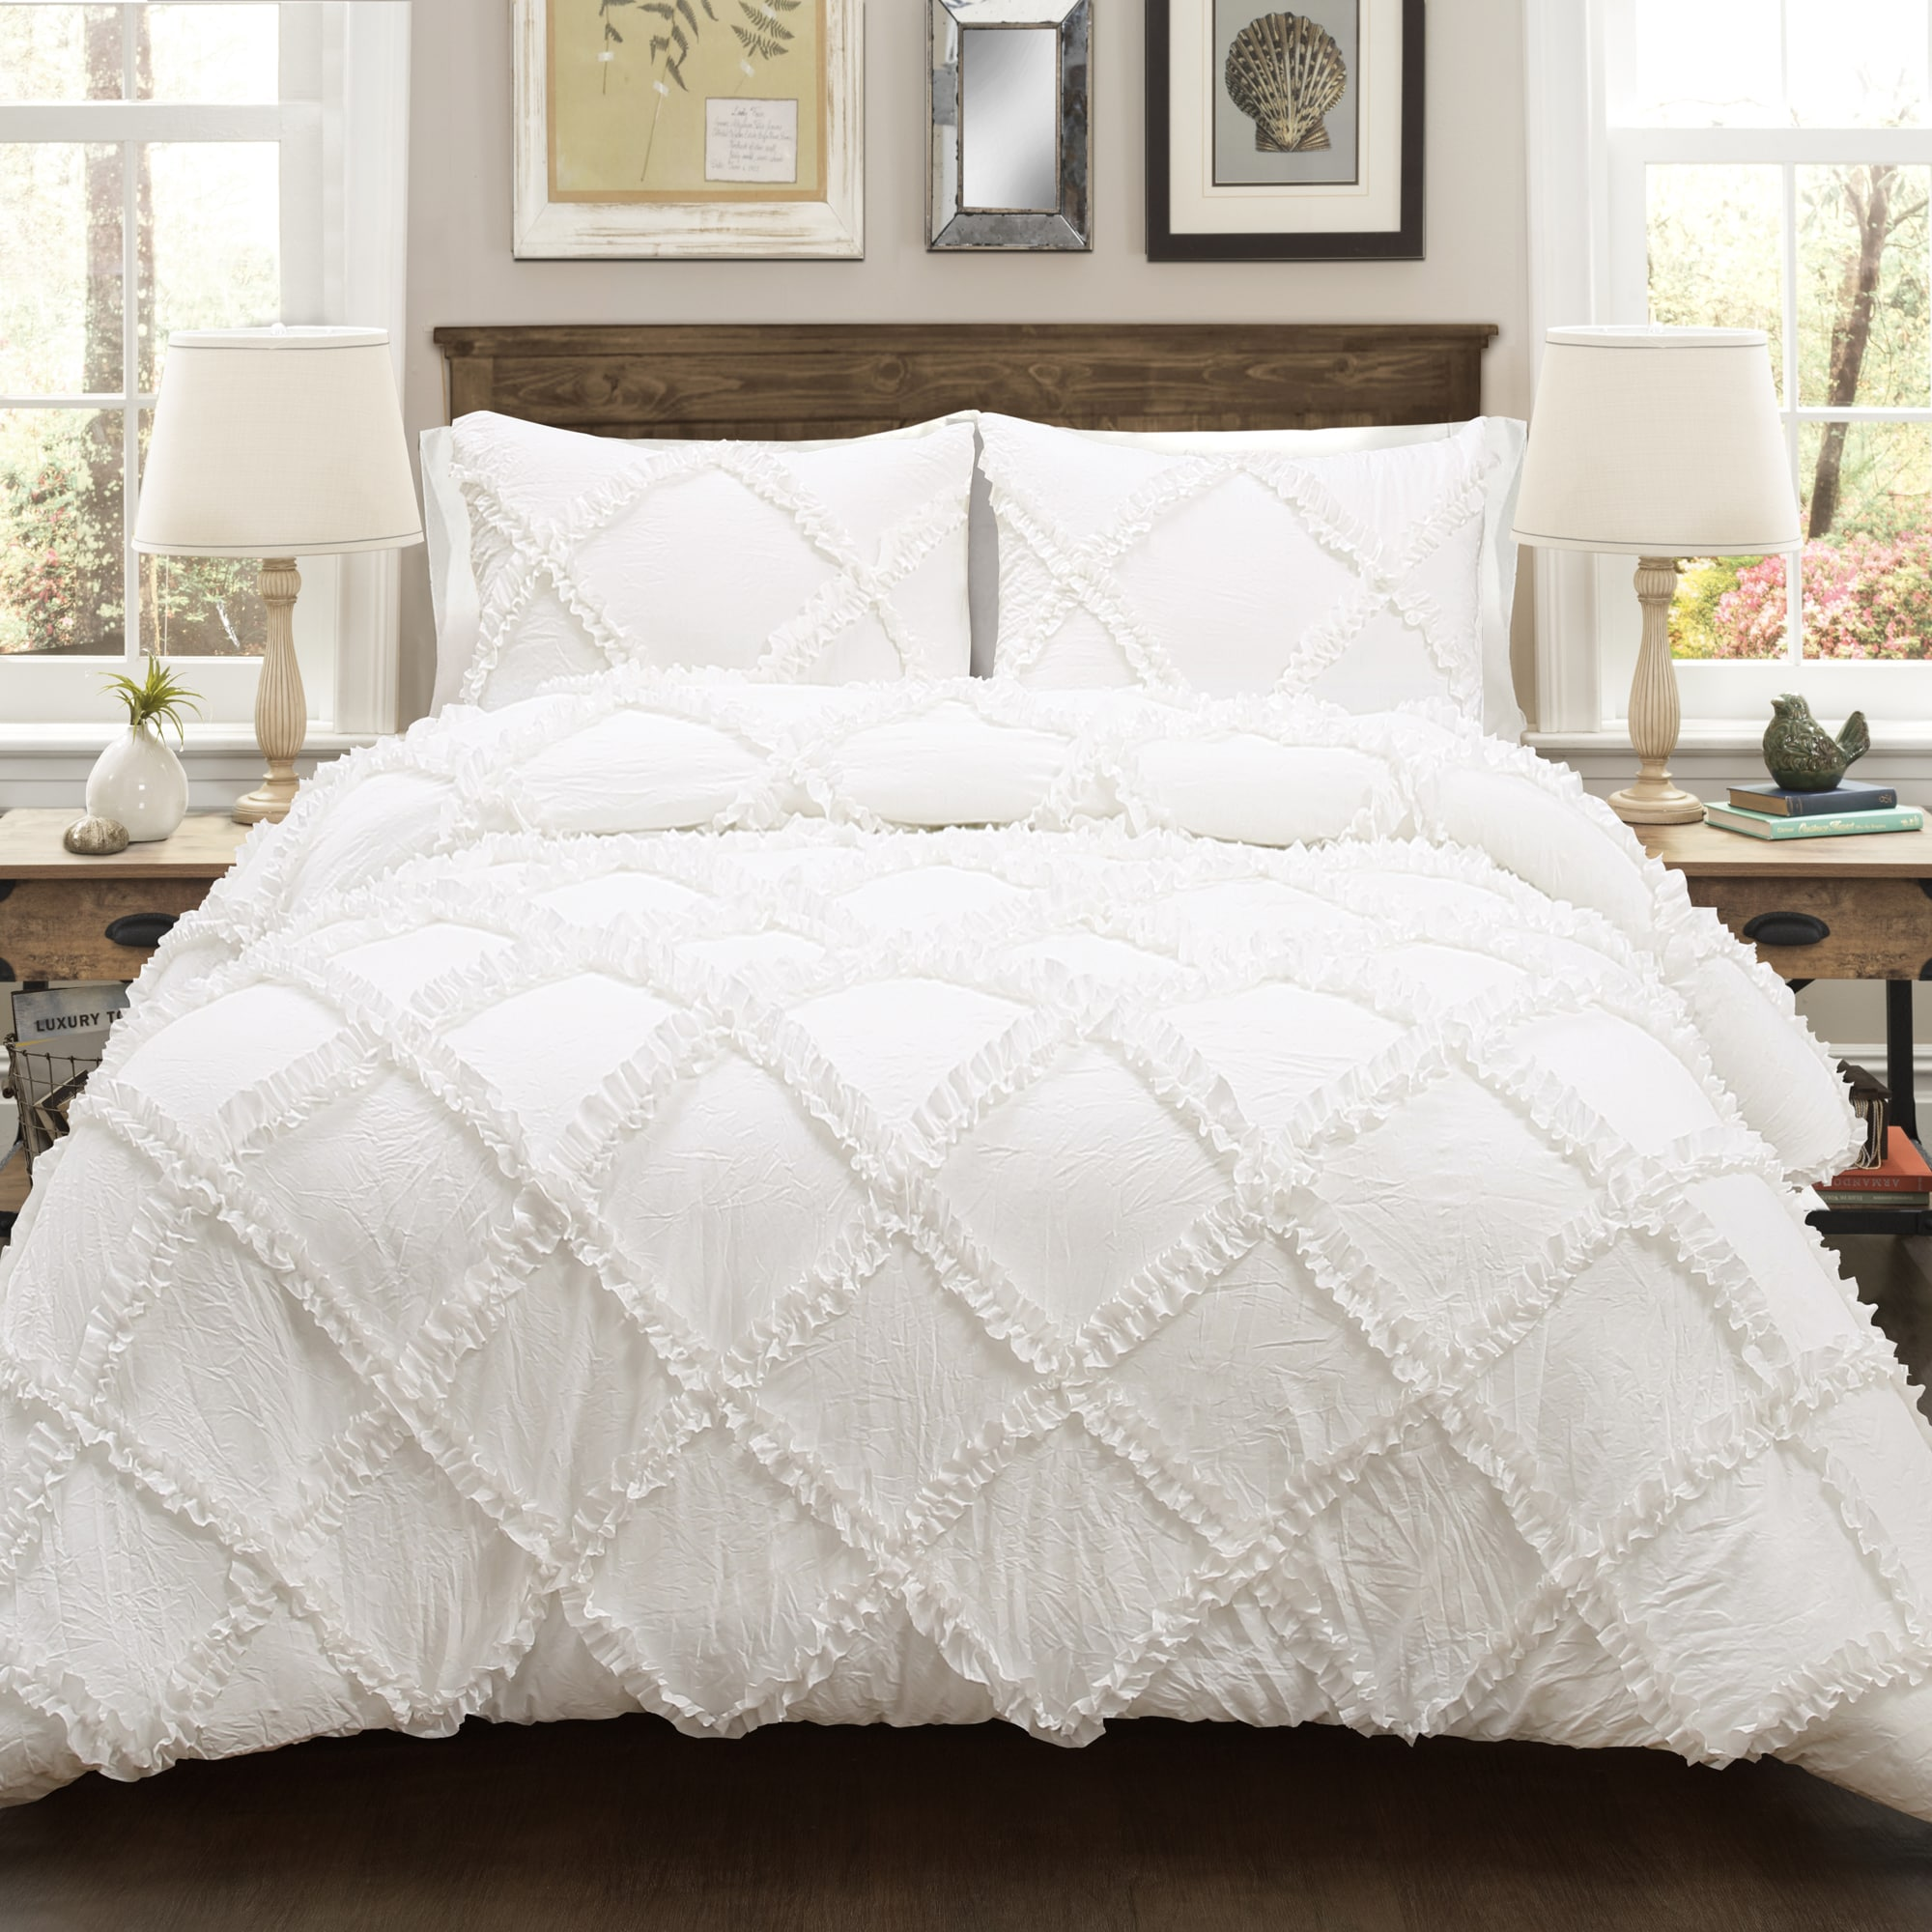 bedding ruffle lush piece diamond white today shipping product decor bath overstock free set comforter